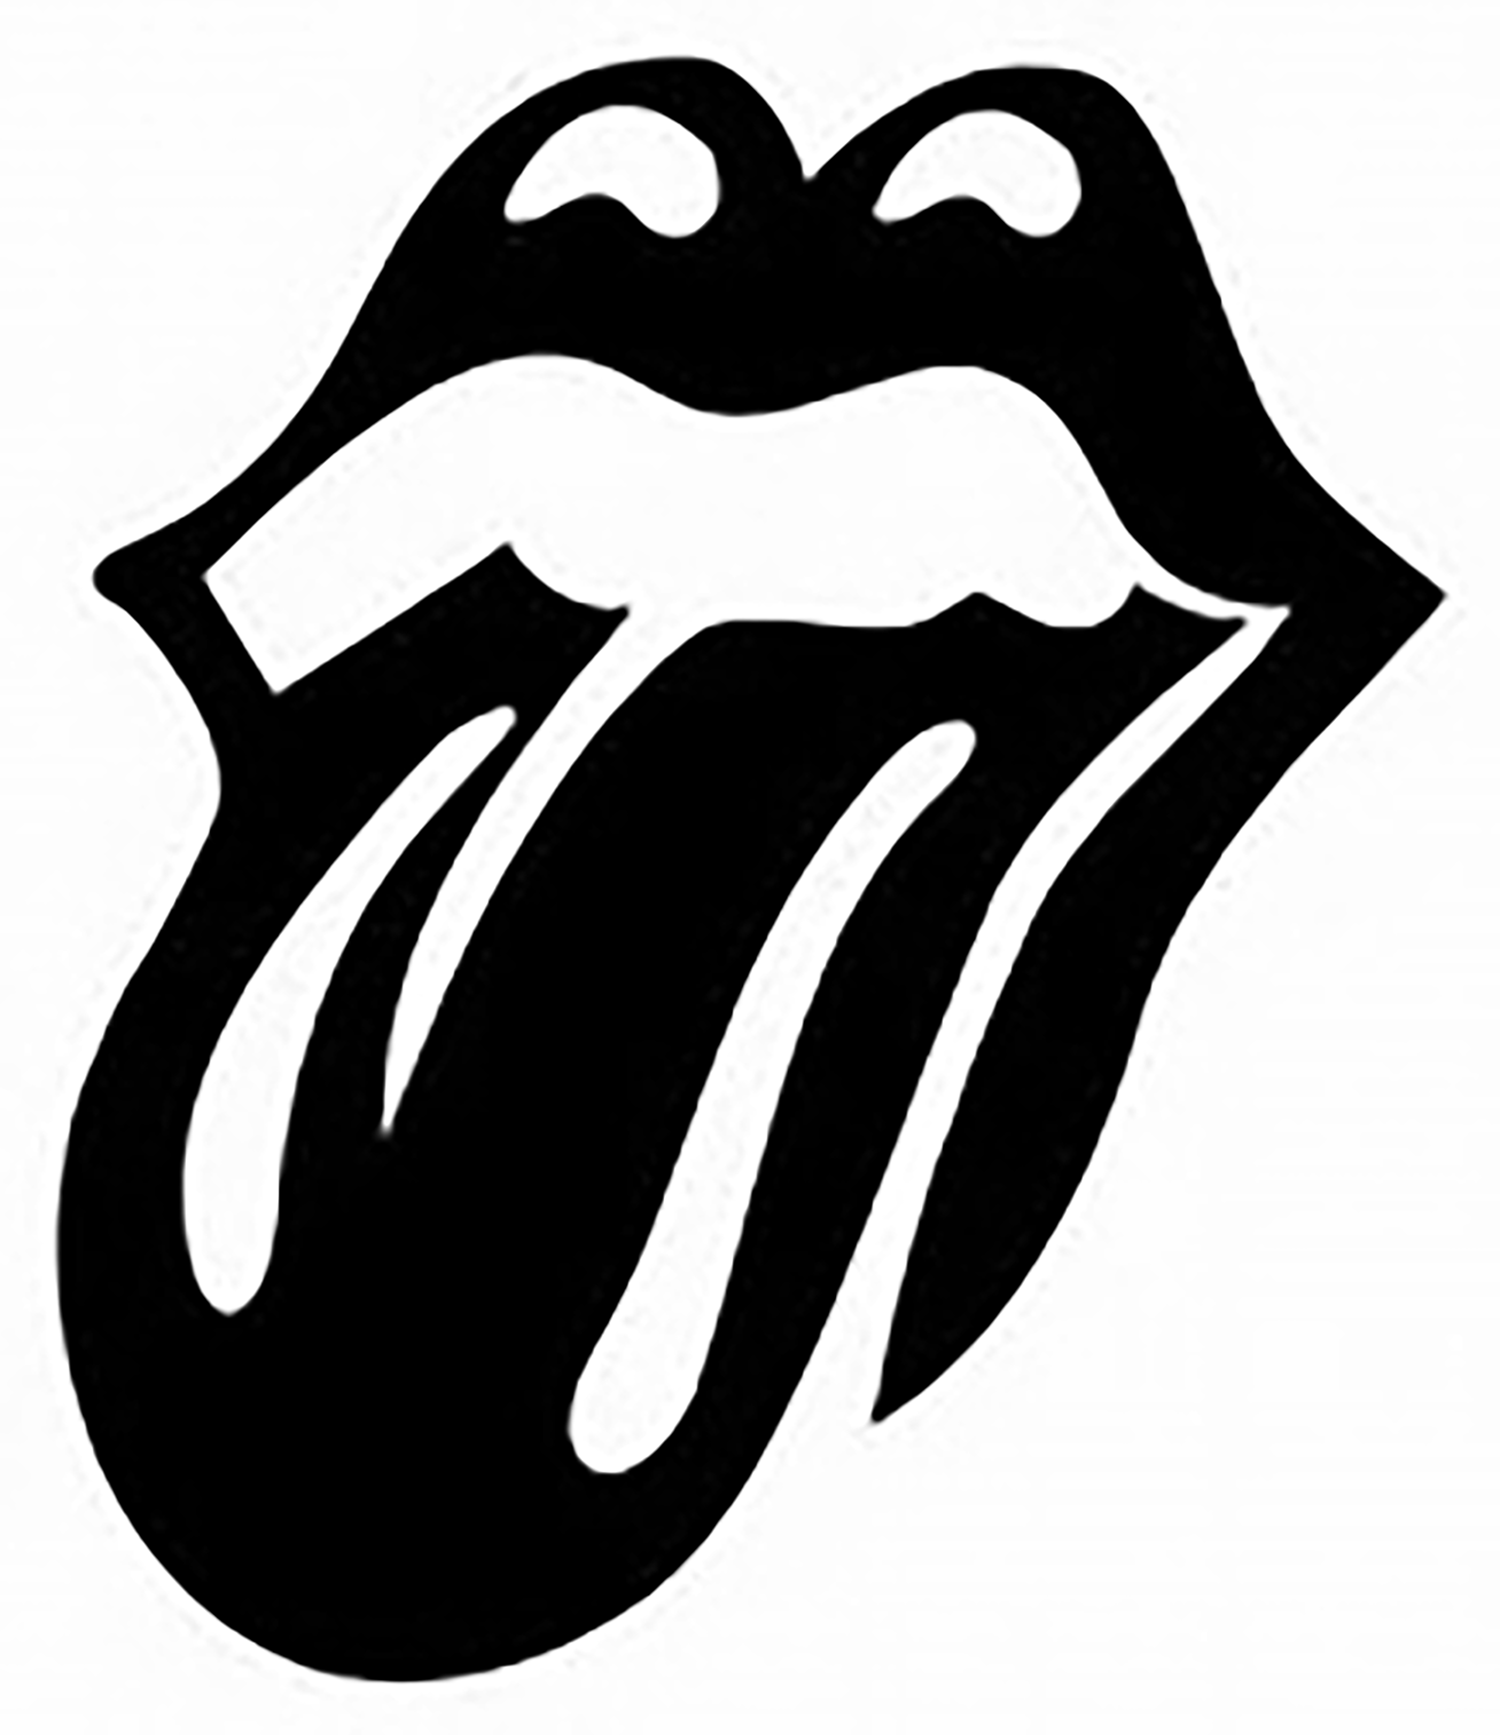 lips silhouette lip rolling stencil stones decal decals custom cameo way projects sold graffiti